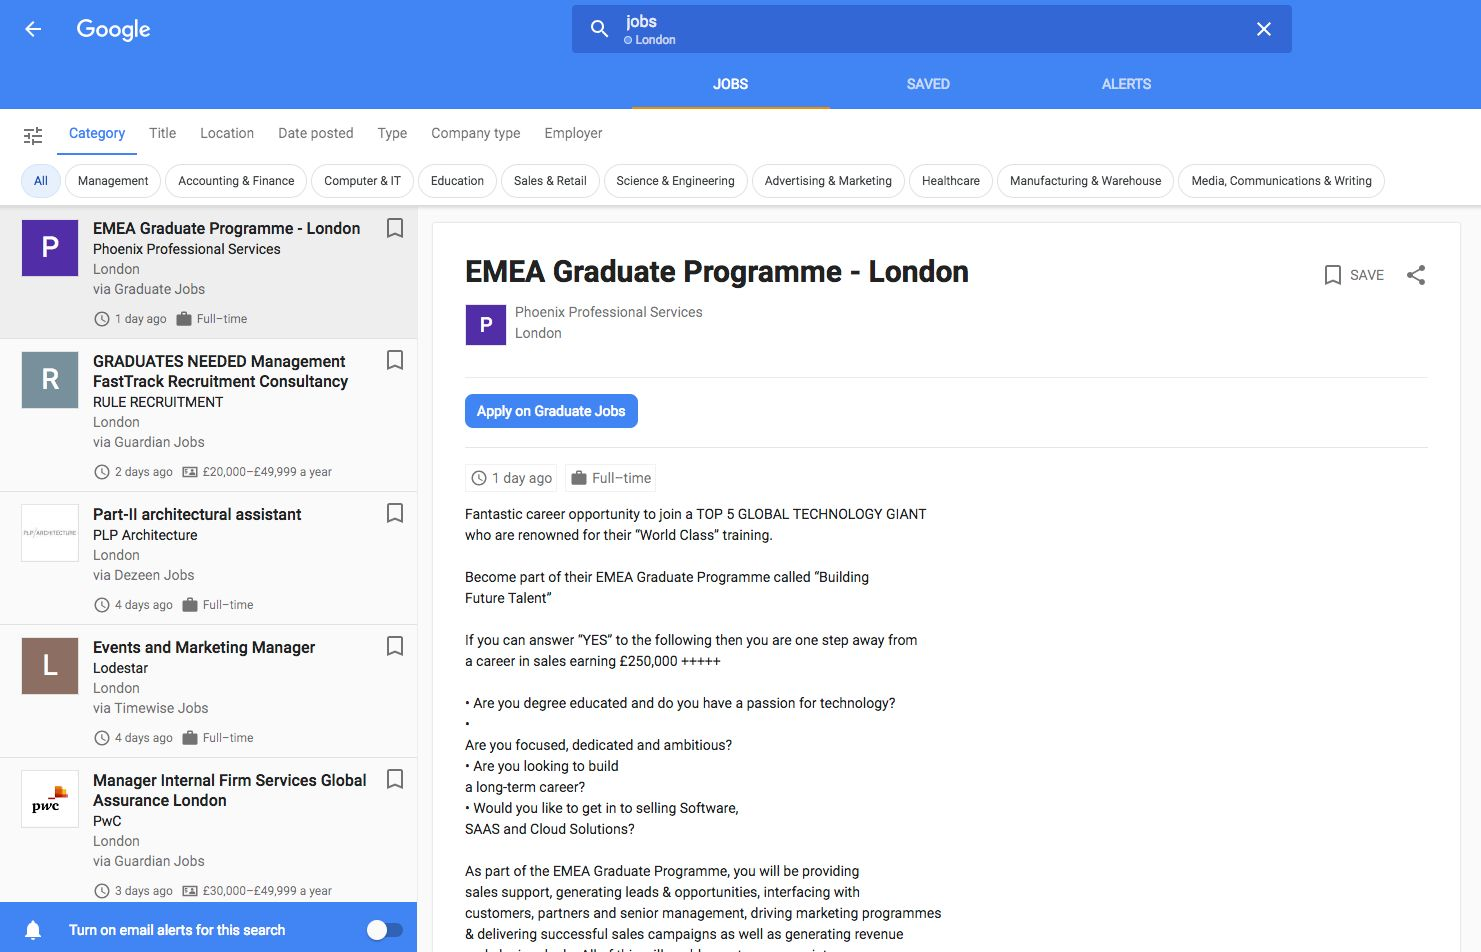 Google's Launched its Job Hunting Aggregation Tool in the UK